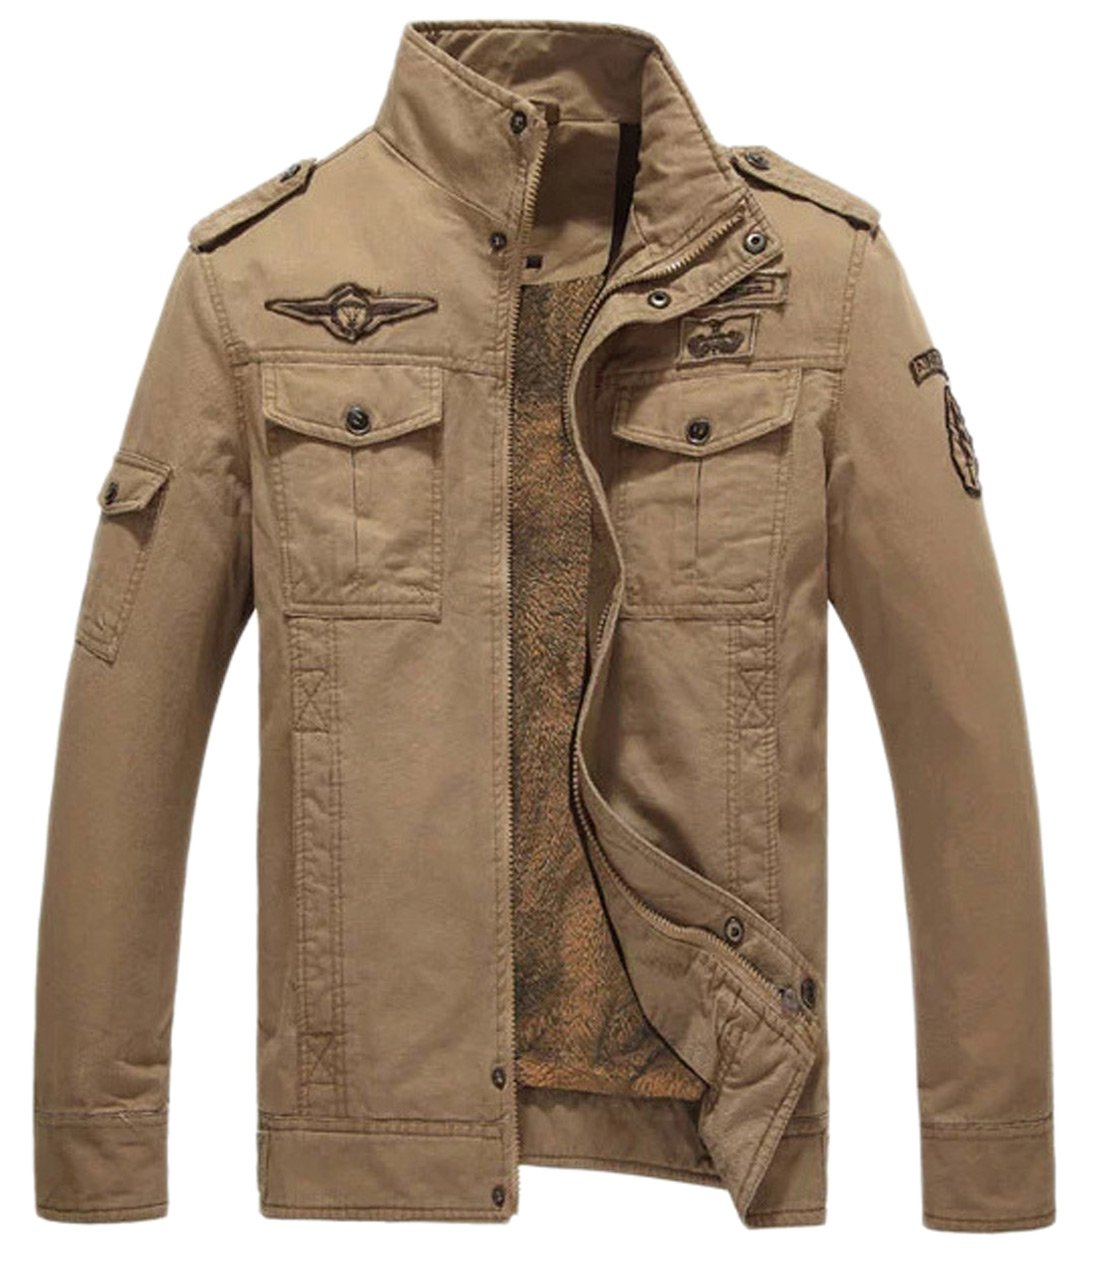 Chouyatou Men's Casual Long Sleeve Full Zip Jacket With Shoulder Straps (X-Small, Thick-Khaki)